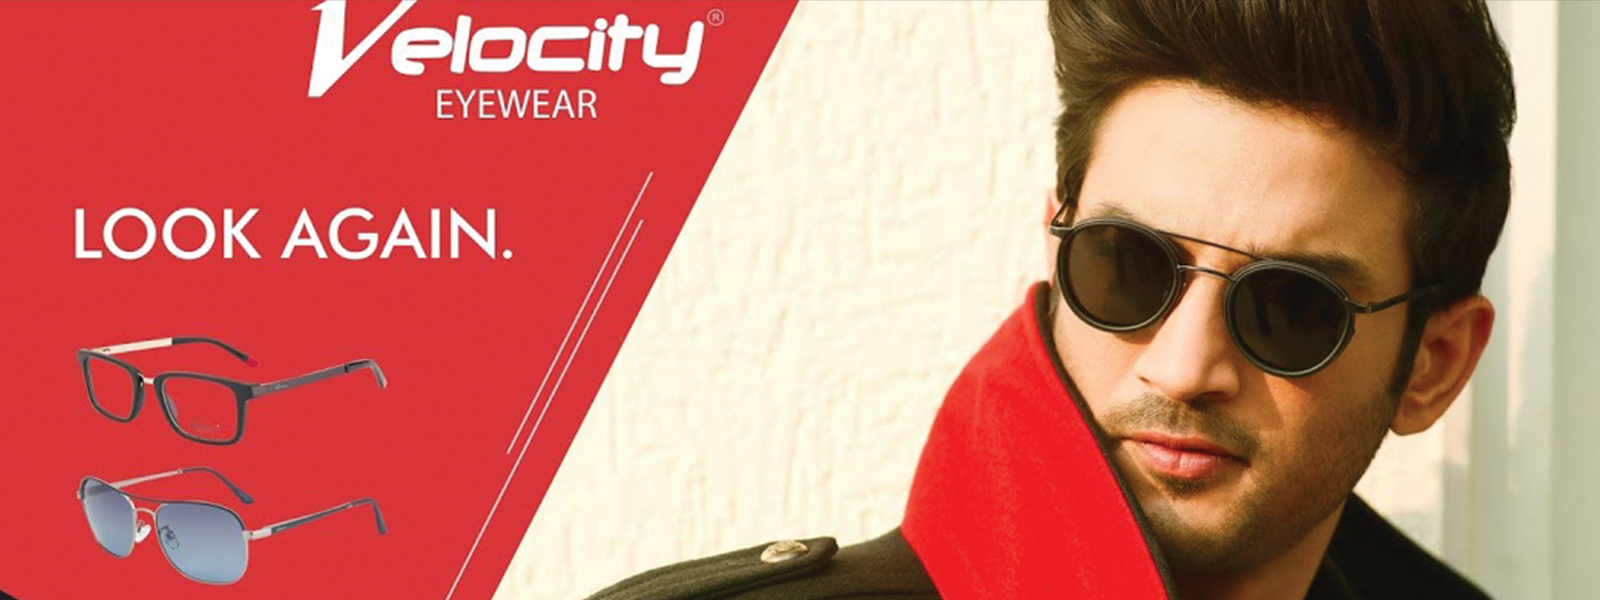 Velocity Men and women eyeglass, eyewear, frames online